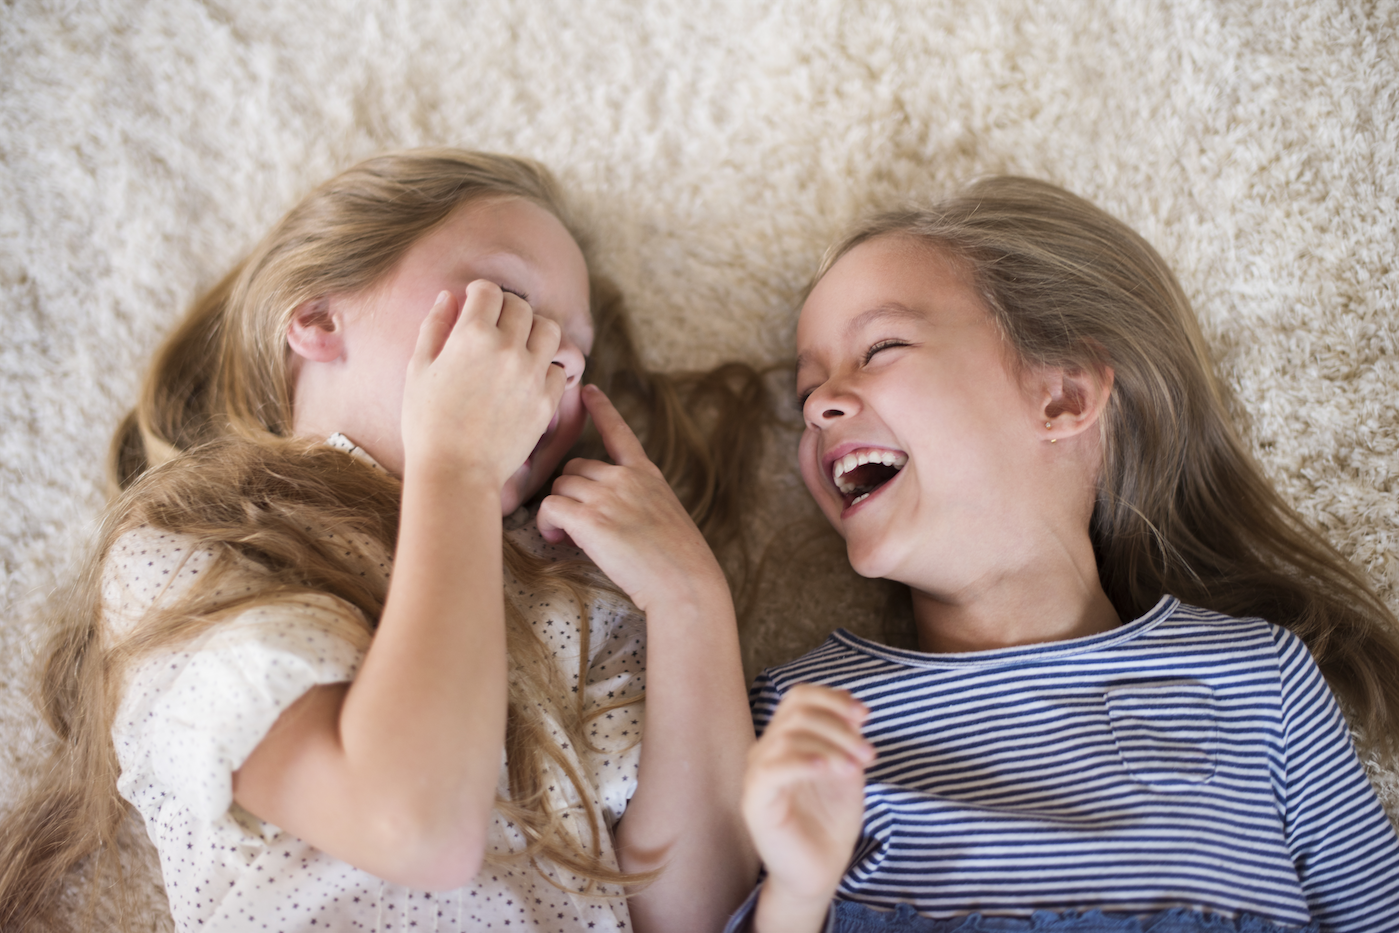 Two young girls laughing